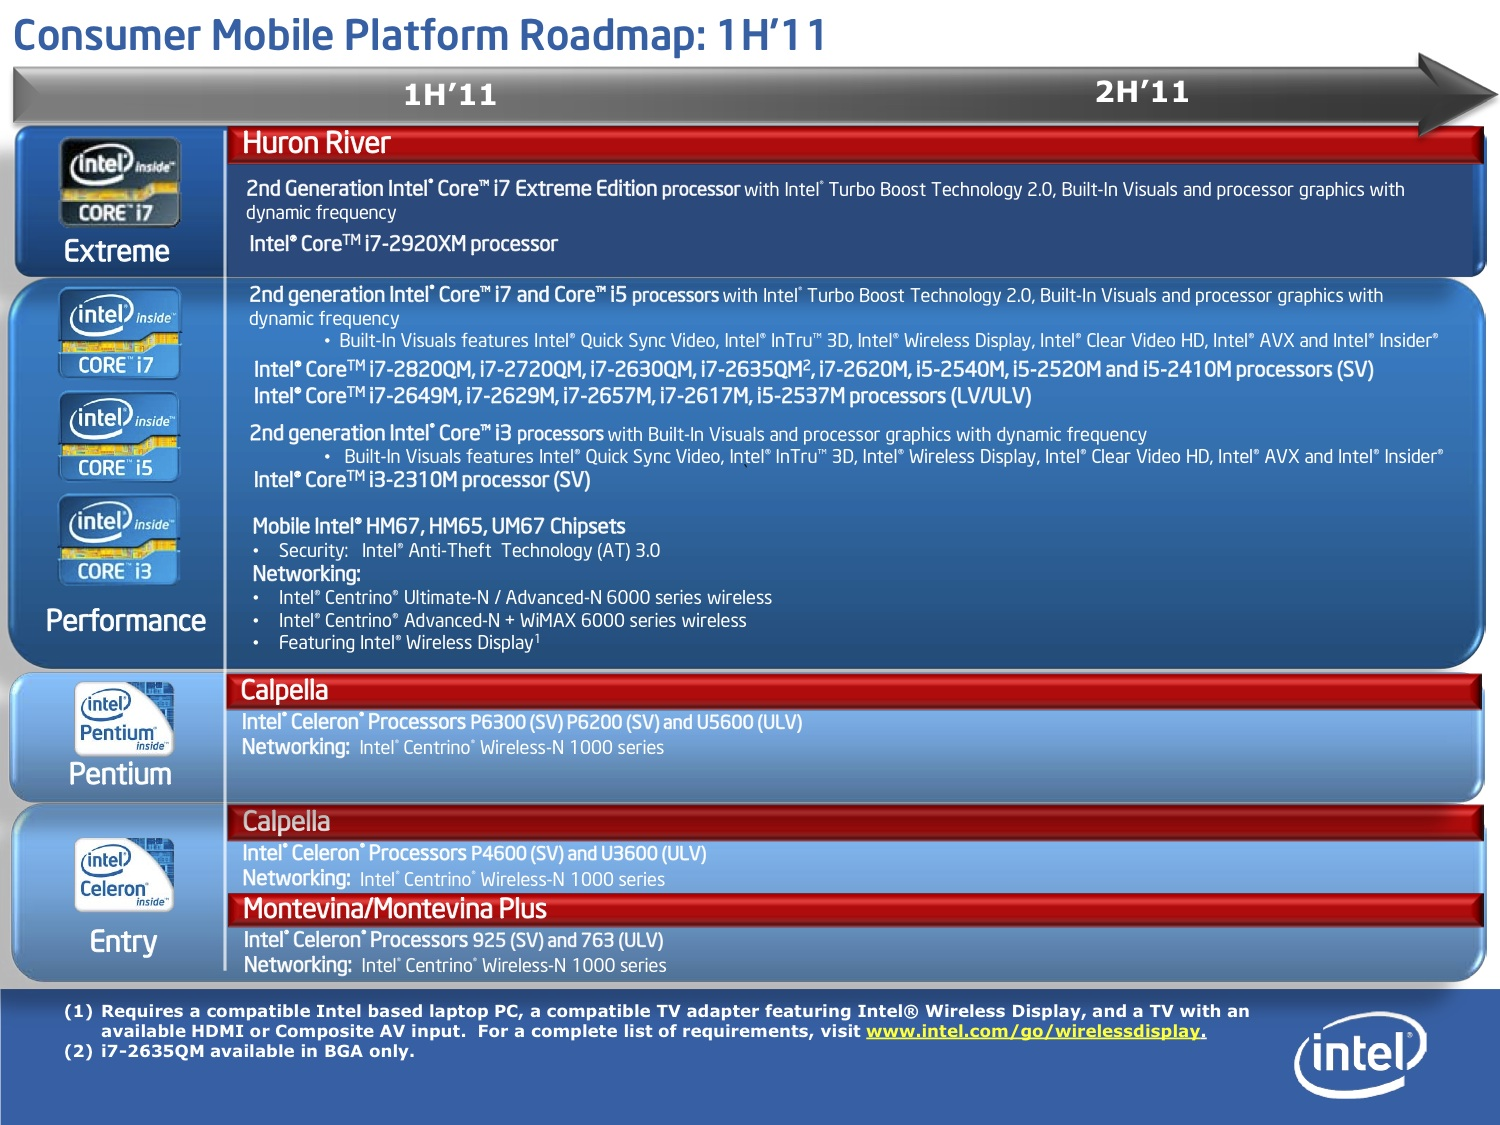 Intel-Roadmap-11022011-2